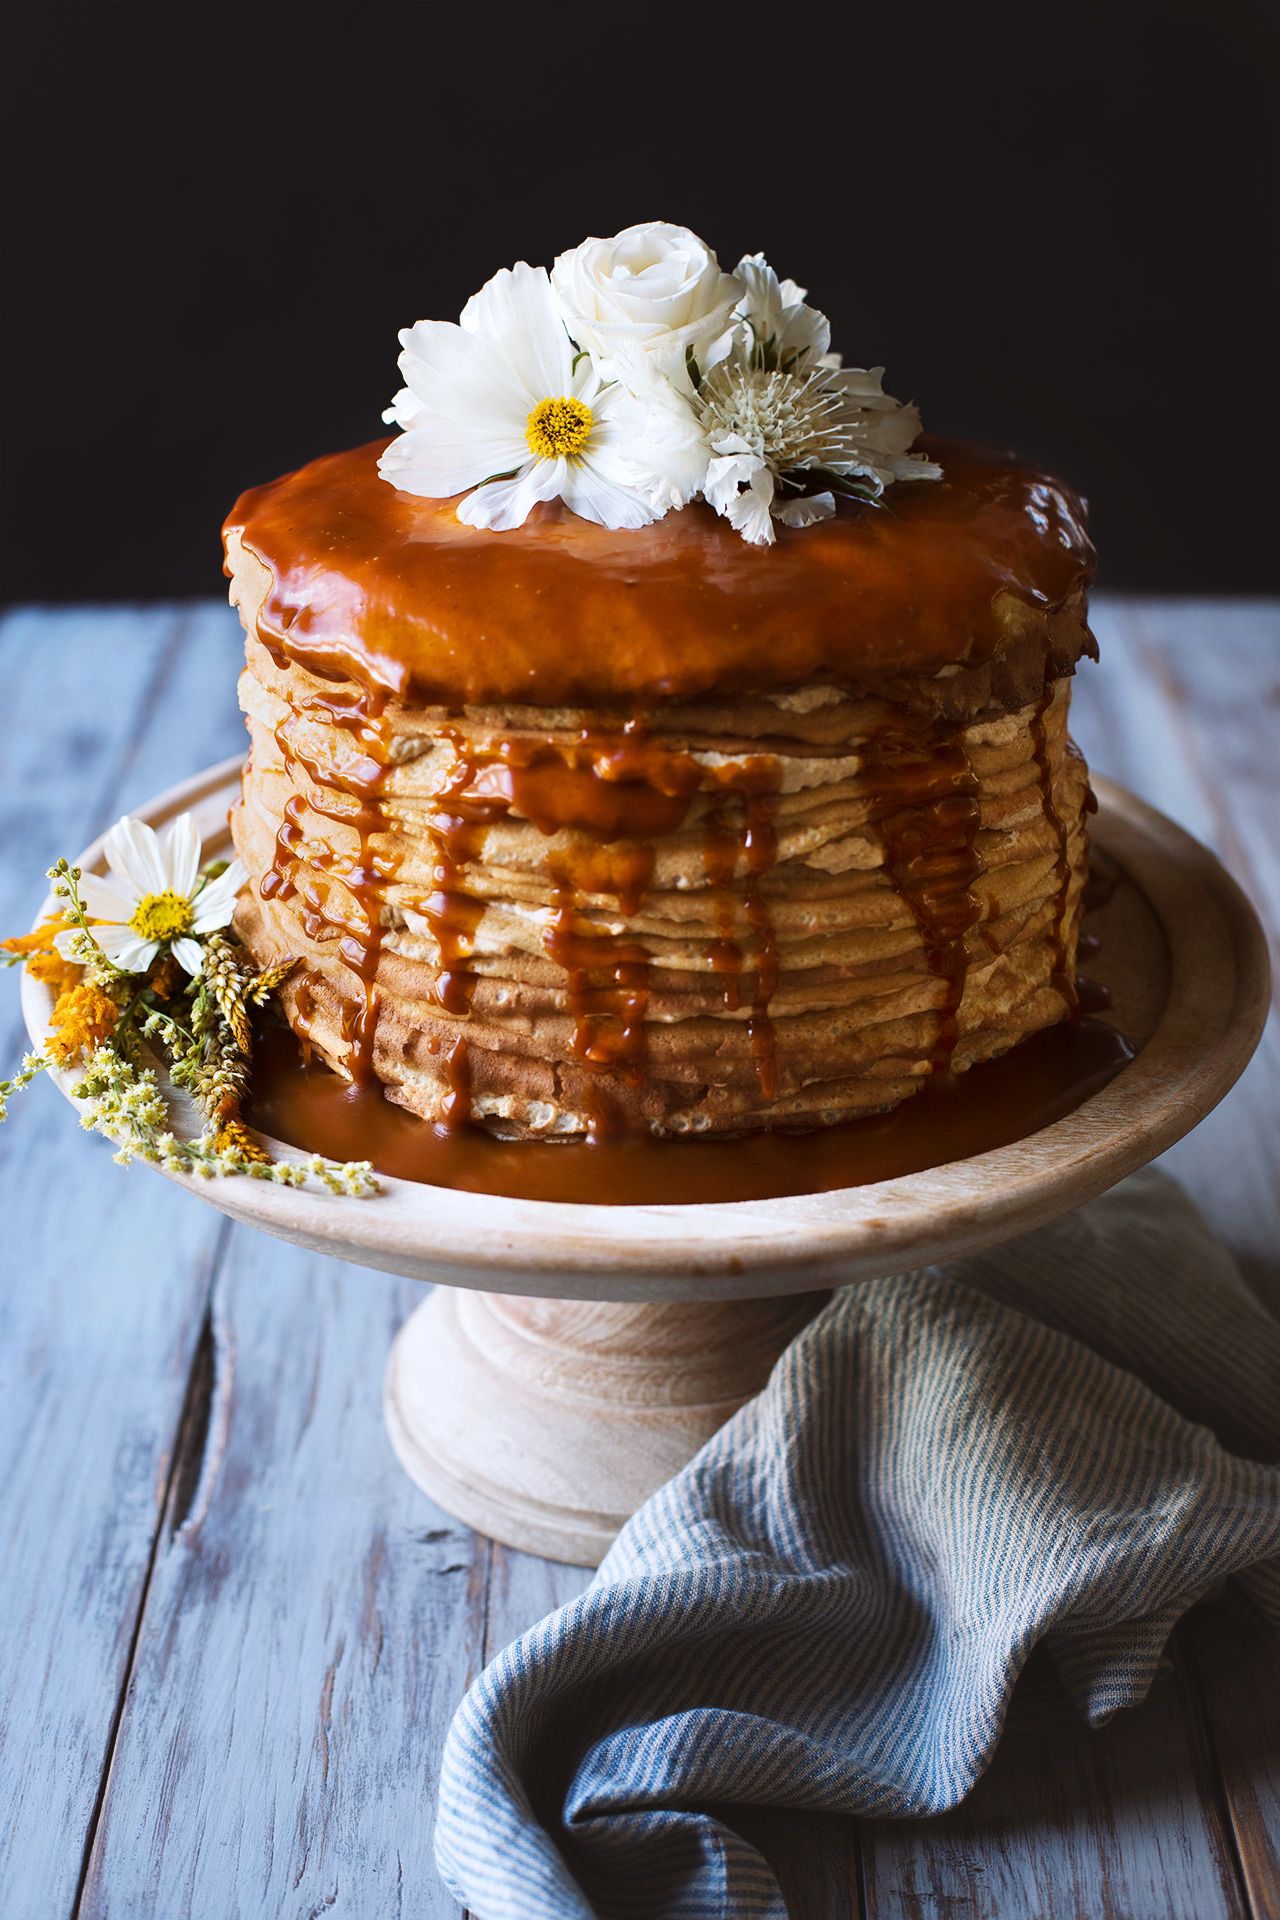 - Dulce de leche crepe cake - perfect for special occasionsitems we carry for this: dulce de leche, vanilla